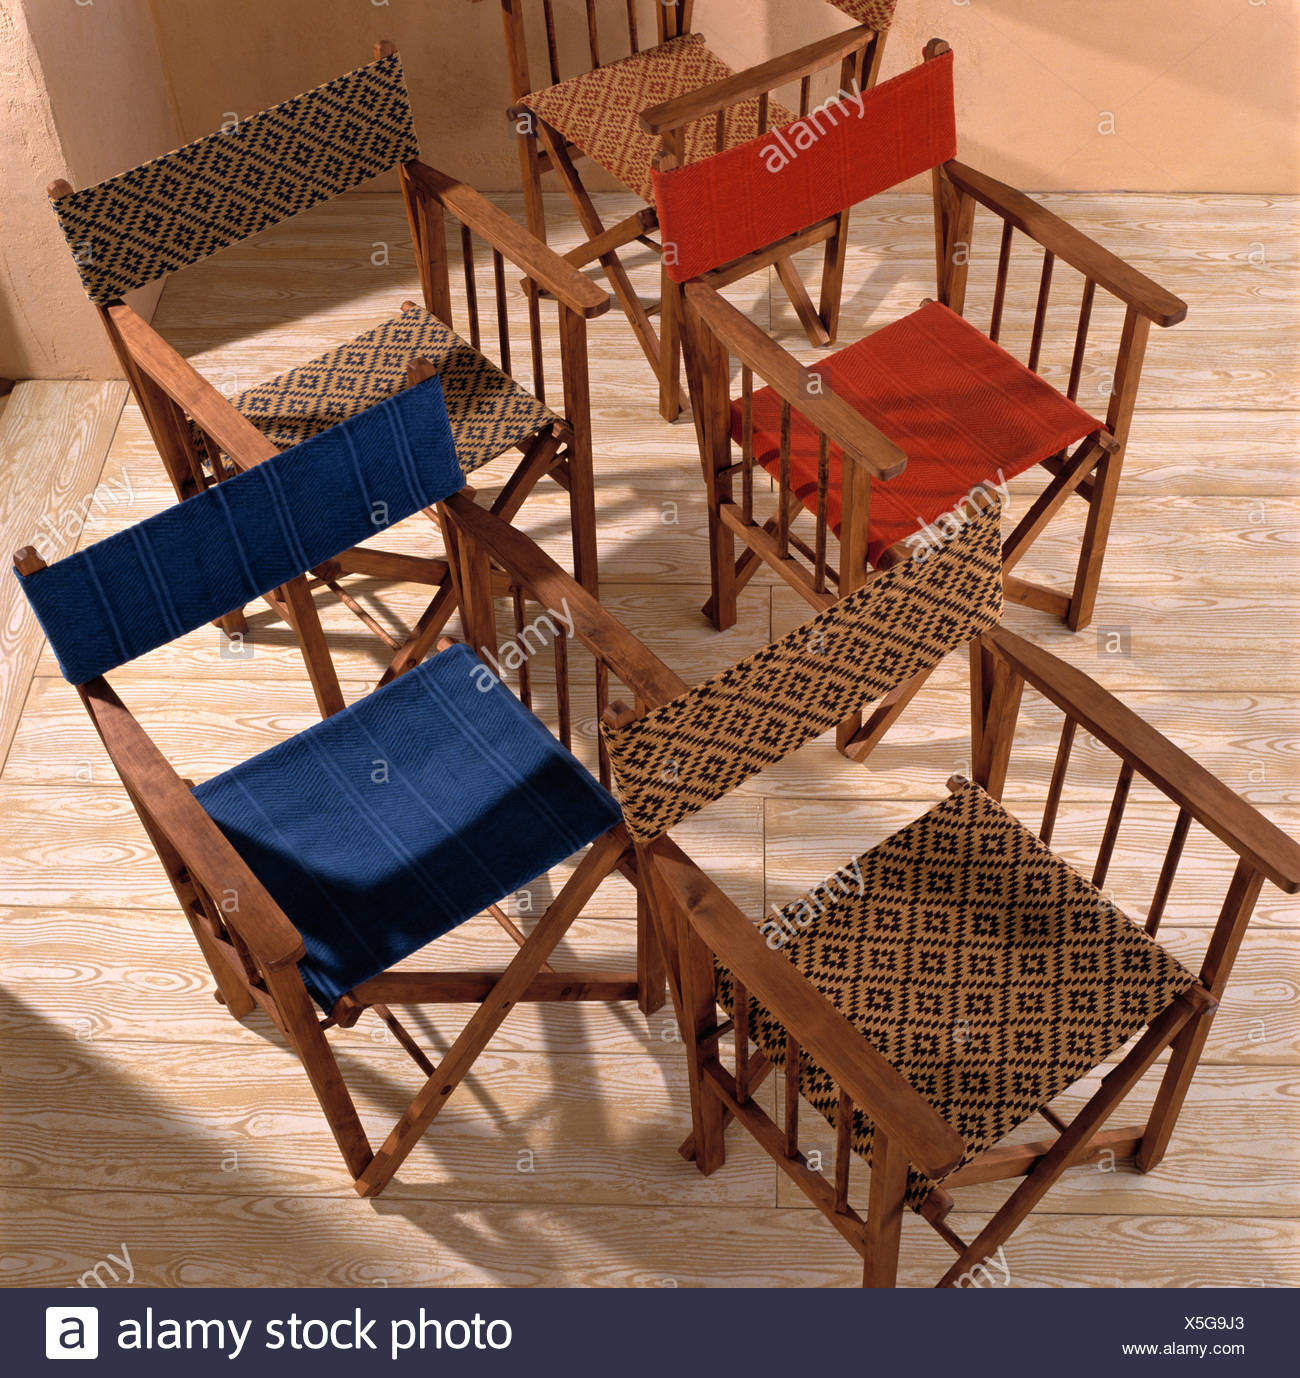 Close Up Of Group Of Red, Blue And Patterned Wooden Directoru0027s Chairs